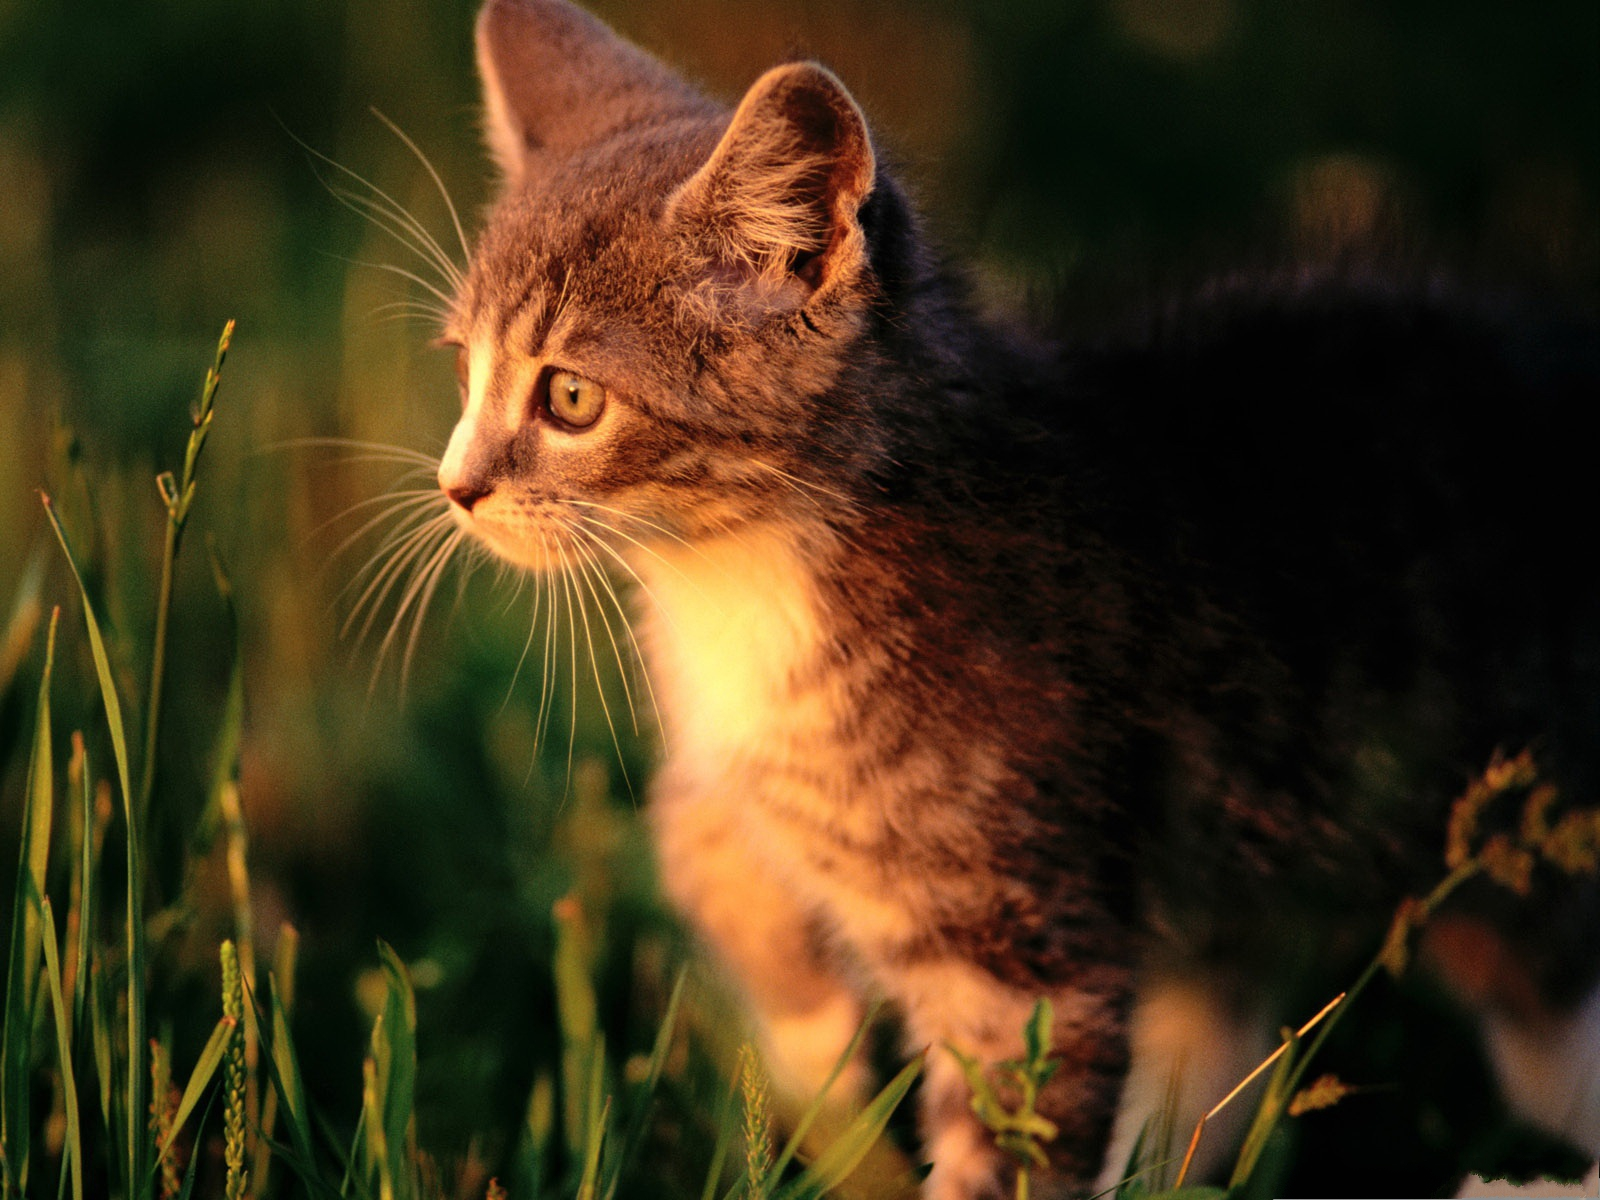 click to free download the wallpaper--Egyptian Cat Photo, Wild Kitty Staying Outdoor, Focusing on Grass 1600X1200 free wallpaper download